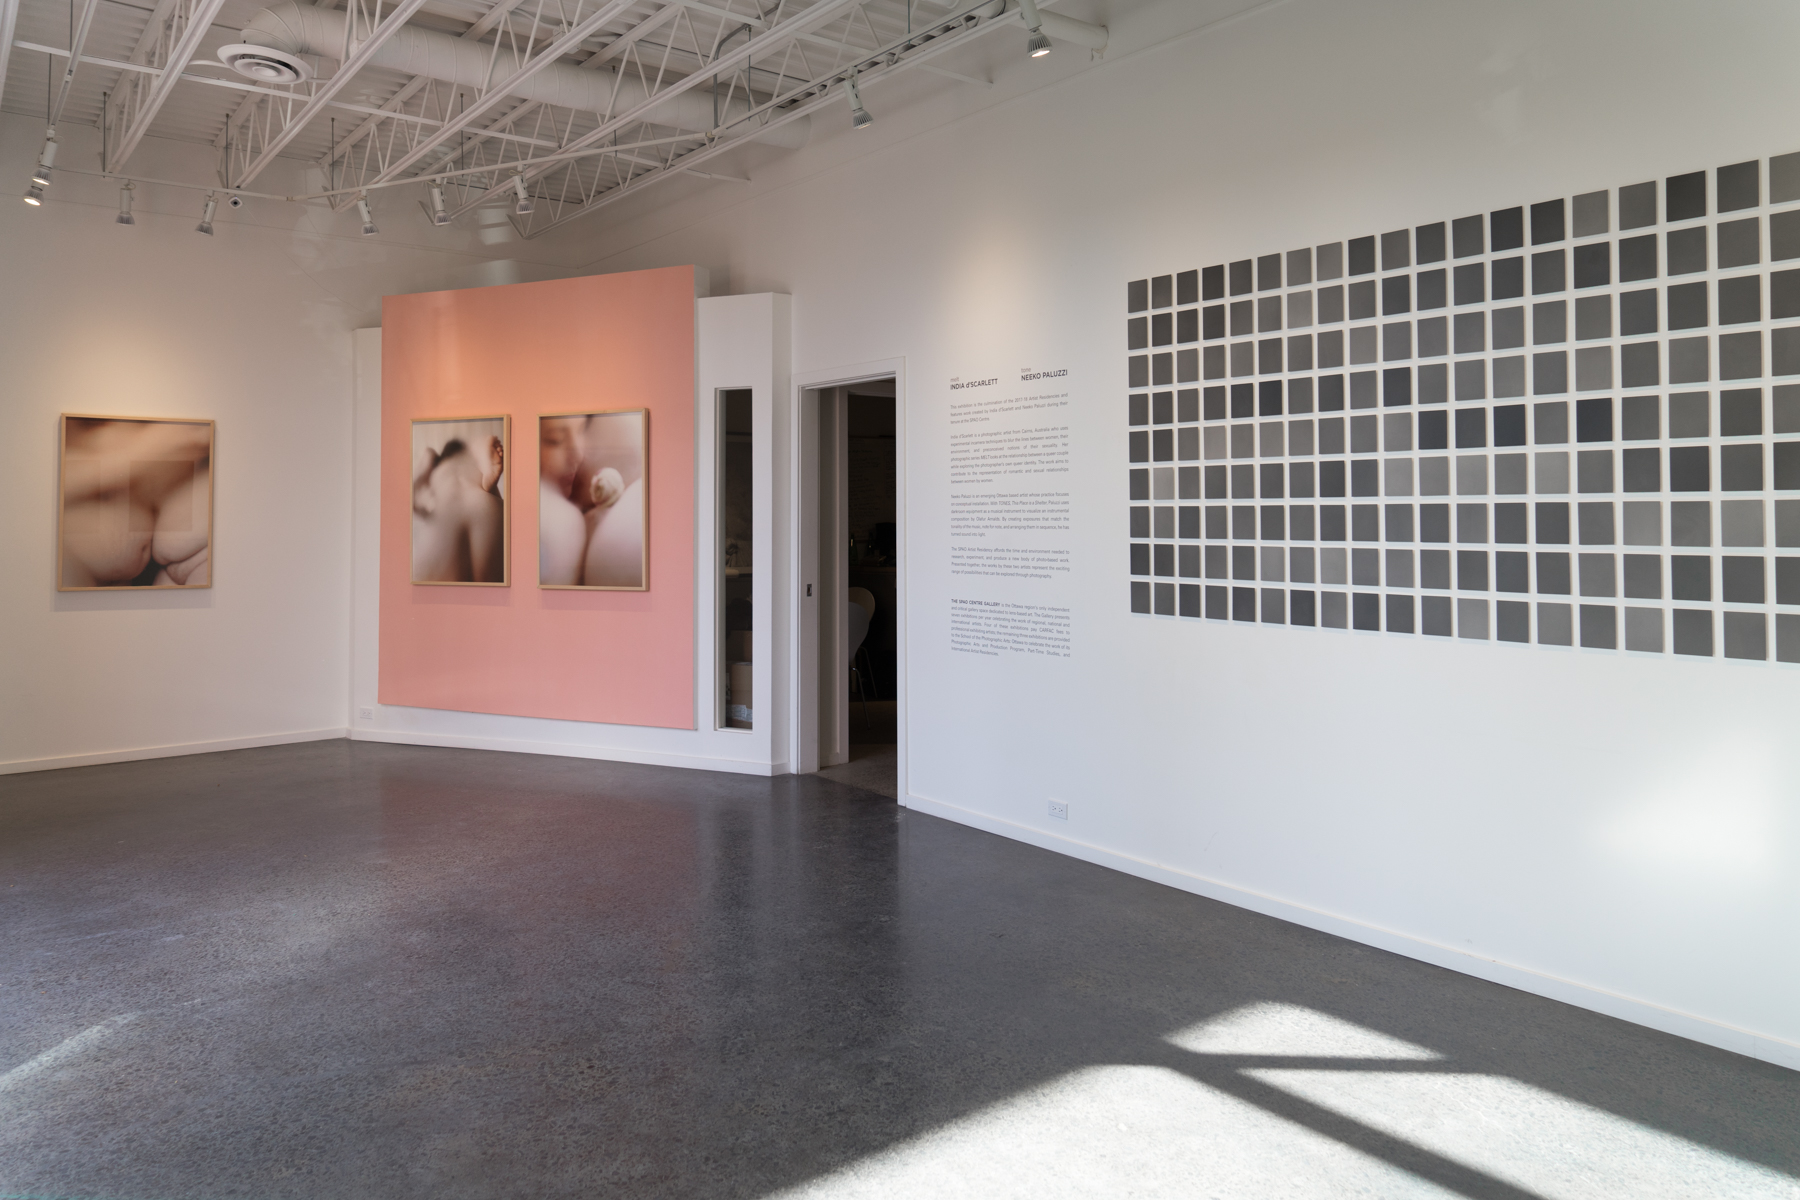 SPAO's Artist in Residence exhibition, 2018, featuring work by India d'Scarlett and Neeko Paluzzi (installation view)